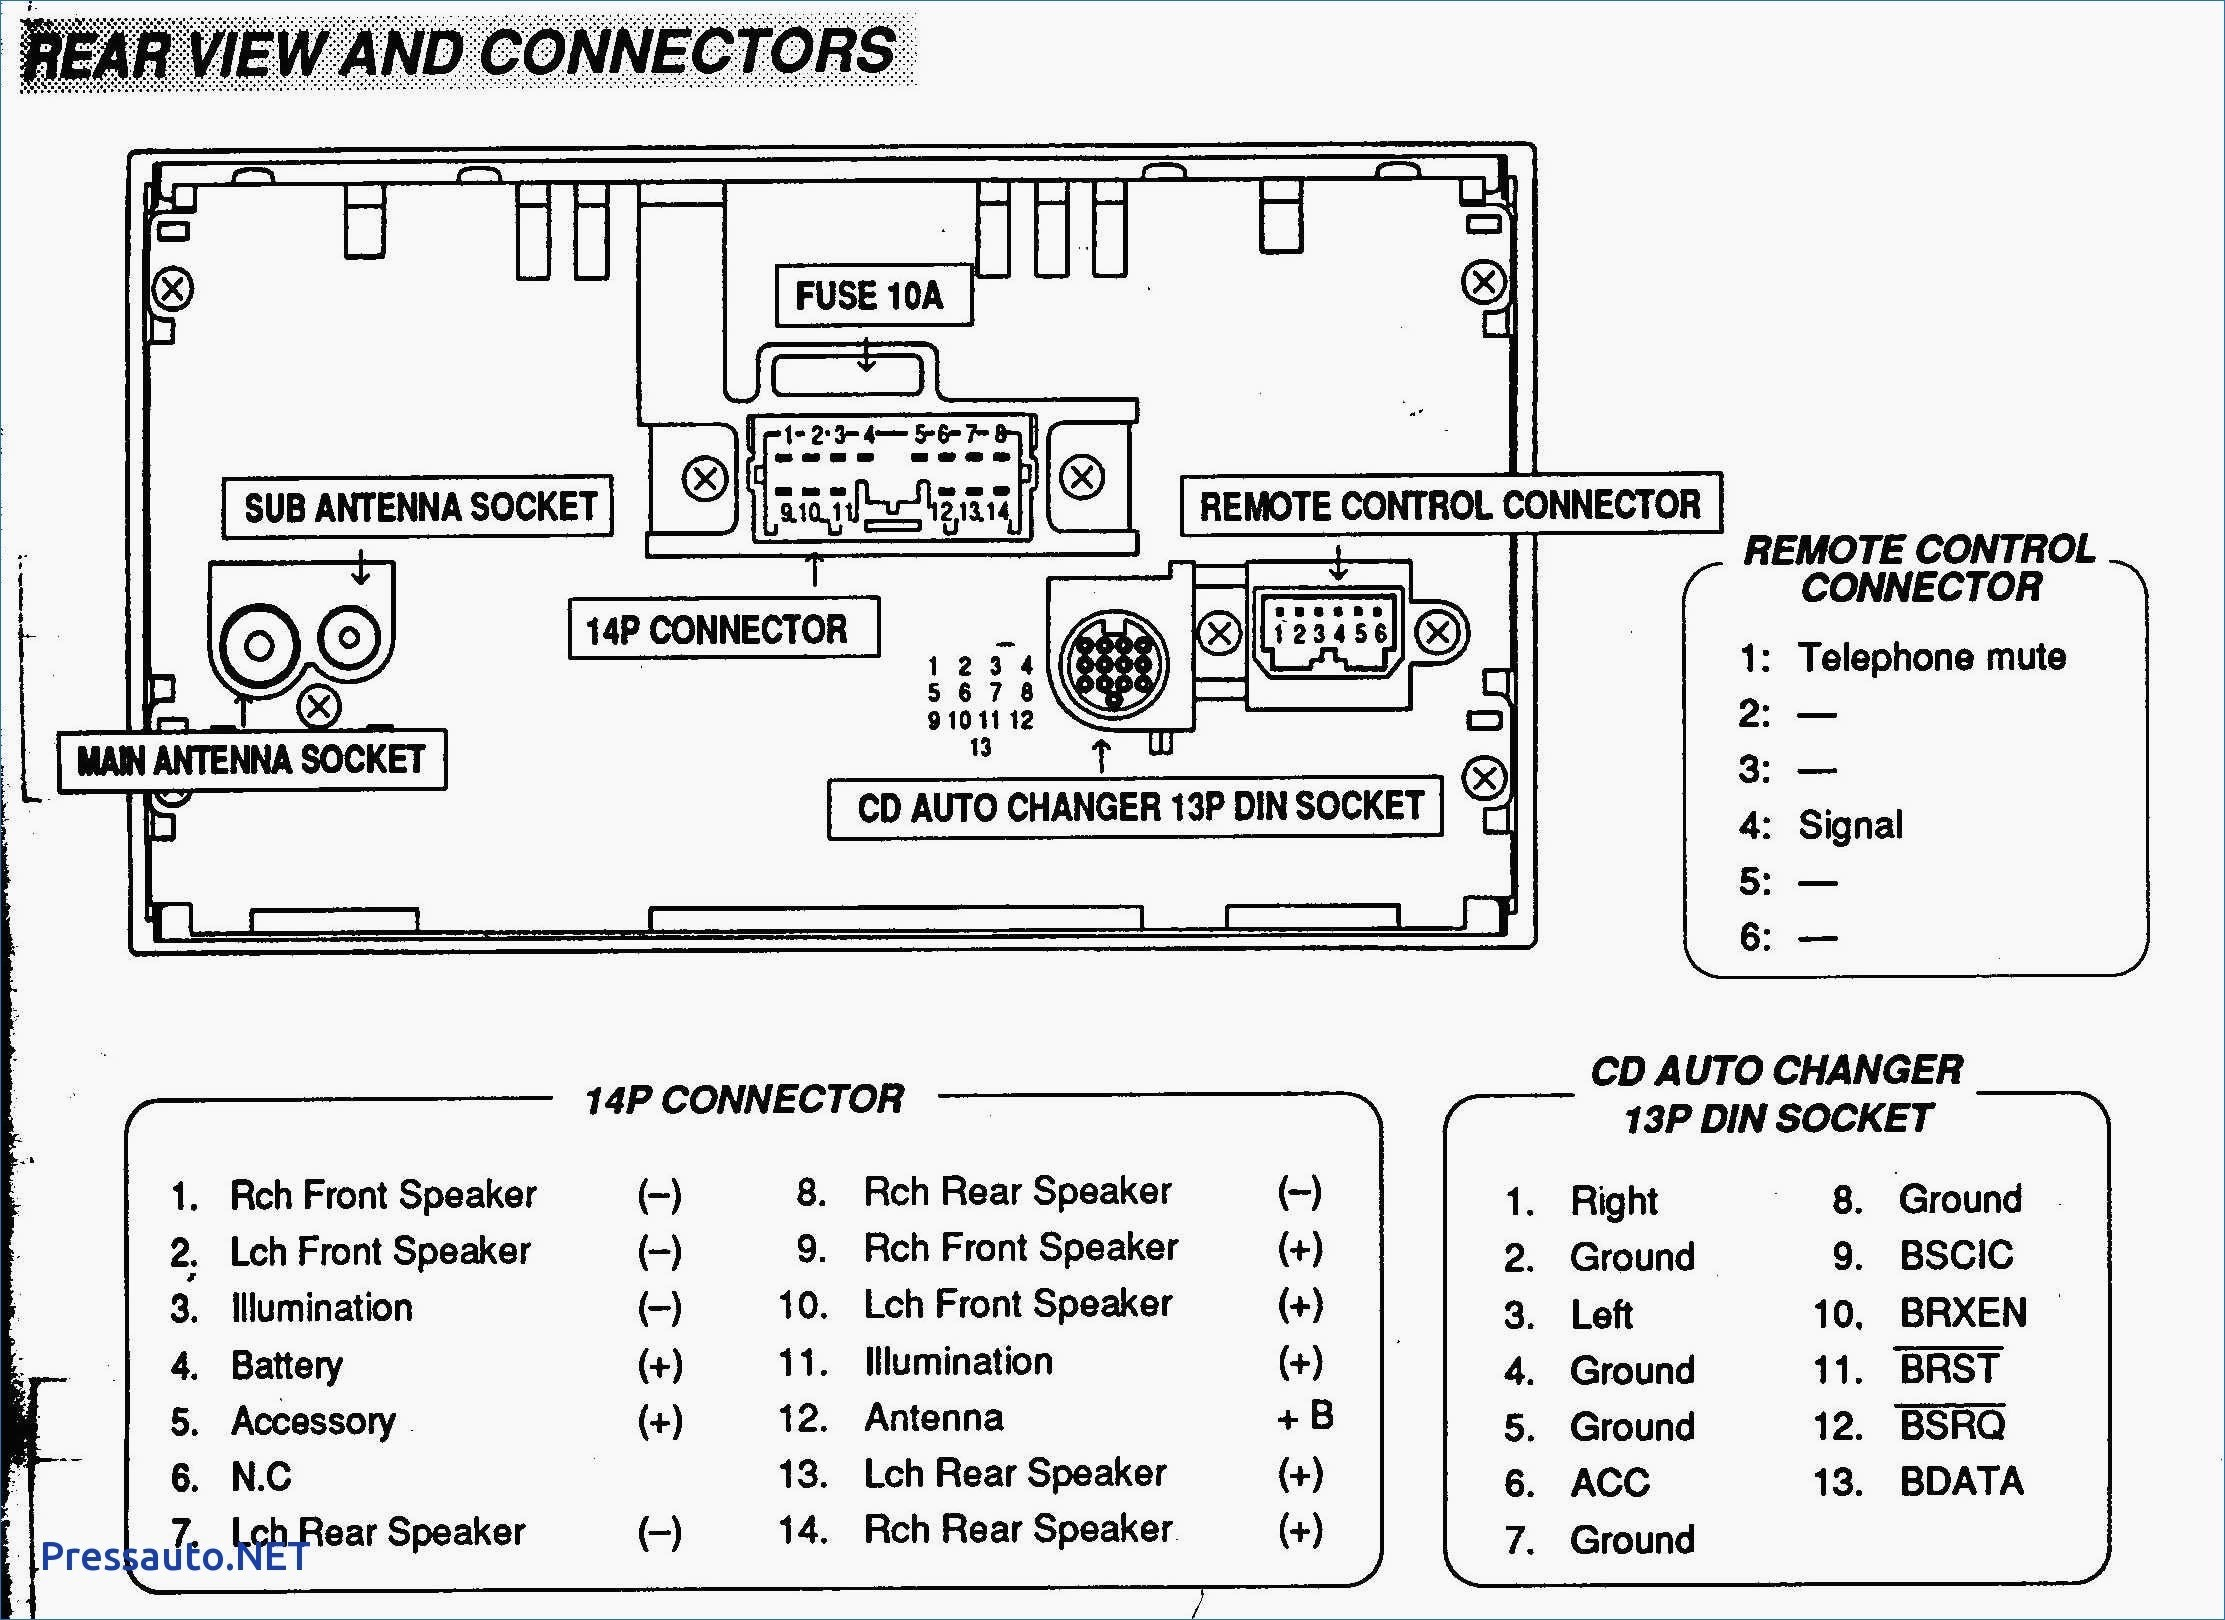 Wiring Diagram for Car Audio System Car Audio Wiring Diagram Wire Codes Mitsubishi Stereo Repair Of Of Wiring Diagram for Car Audio System